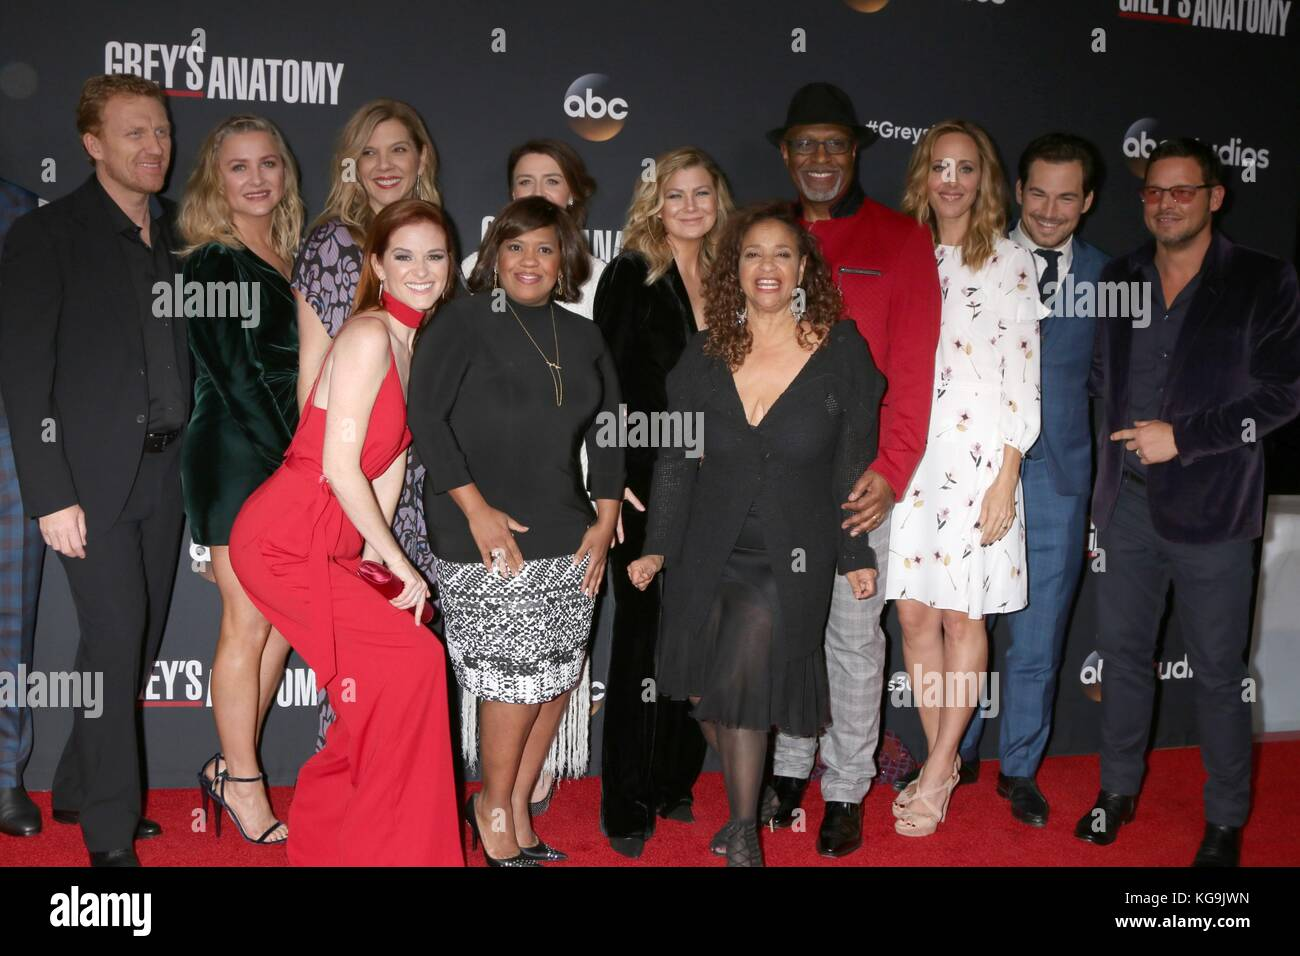 Cast Of Greys Anatomy Stock Photos & Cast Of Greys Anatomy Stock ...